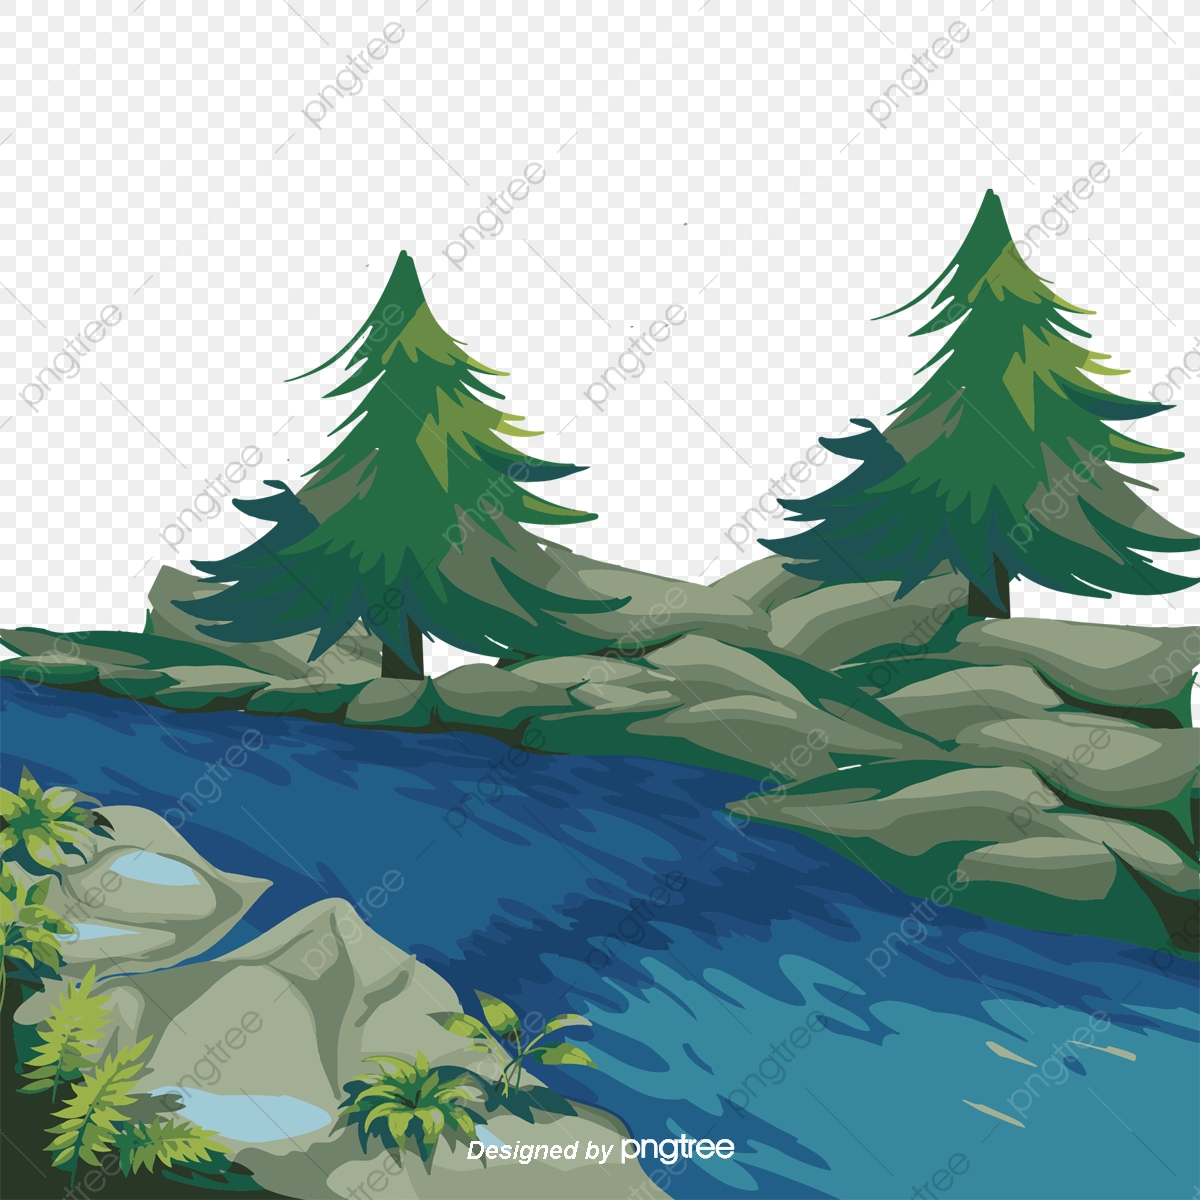 vector river river vector blue png transparent clipart image and psd file for free download https pngtree com freepng vector river 2259431 html